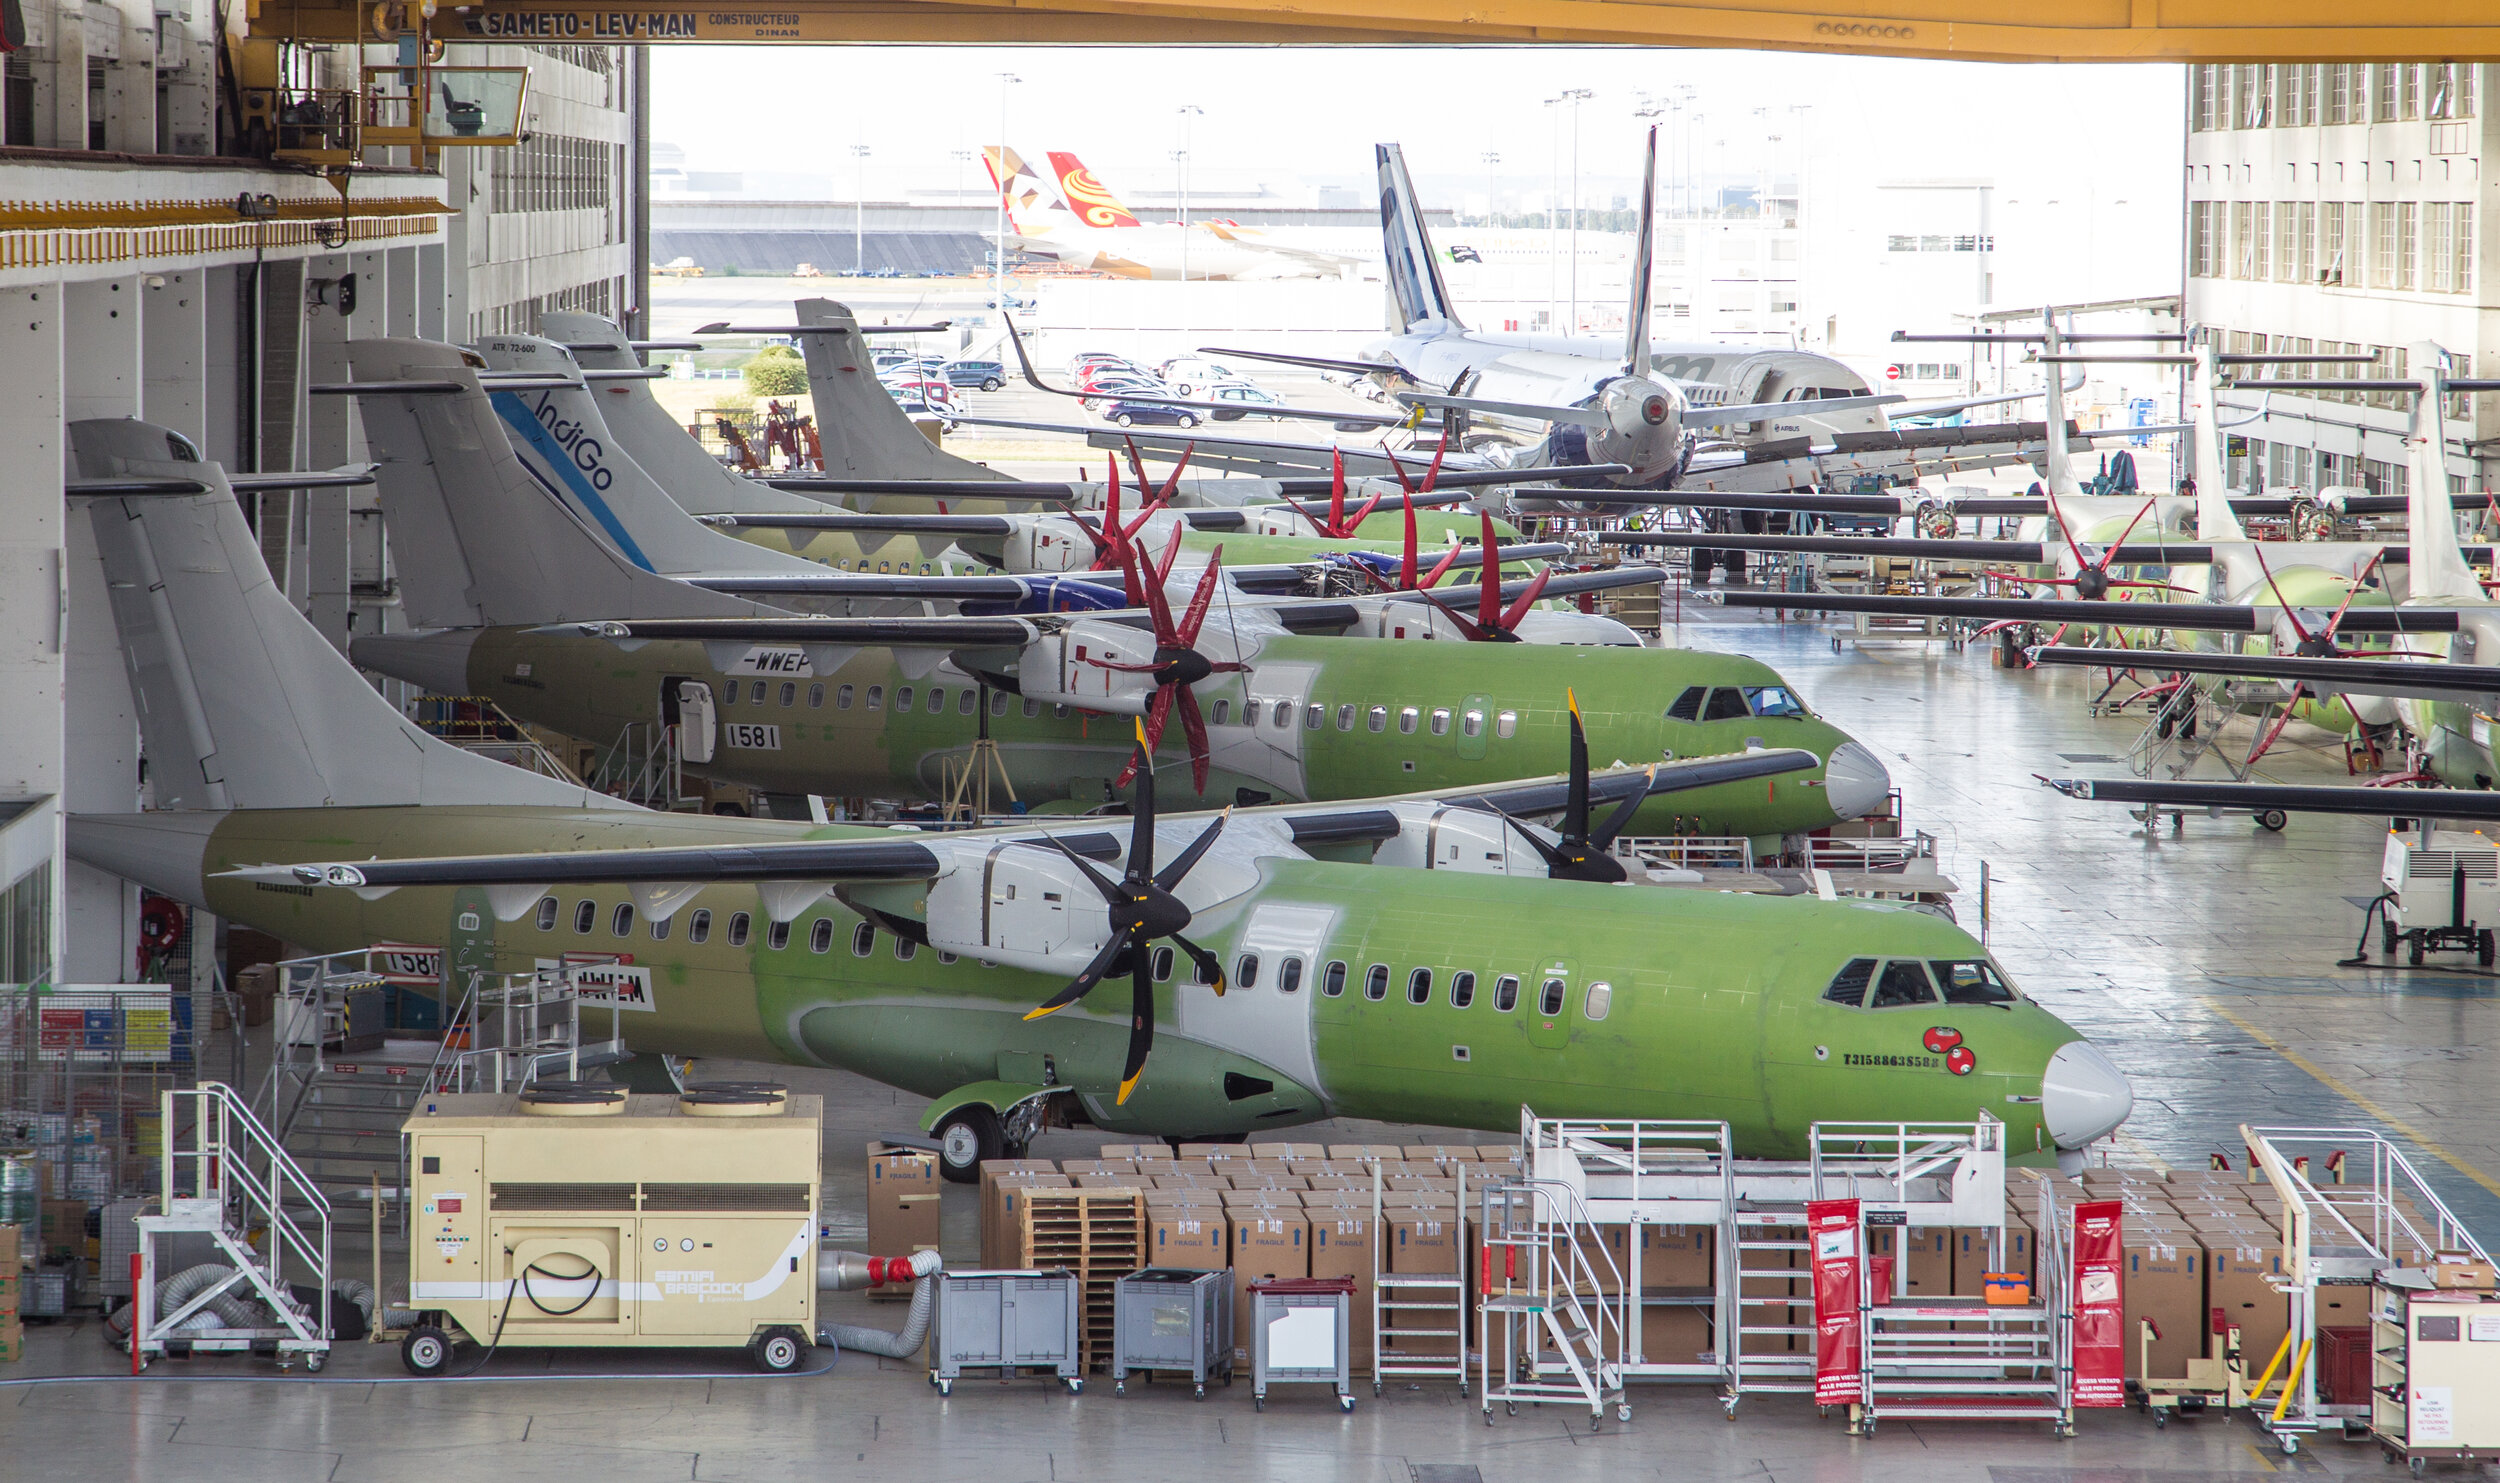 ATR Production hangar - Toulouse 18th September. Photo: Debbie Riley.